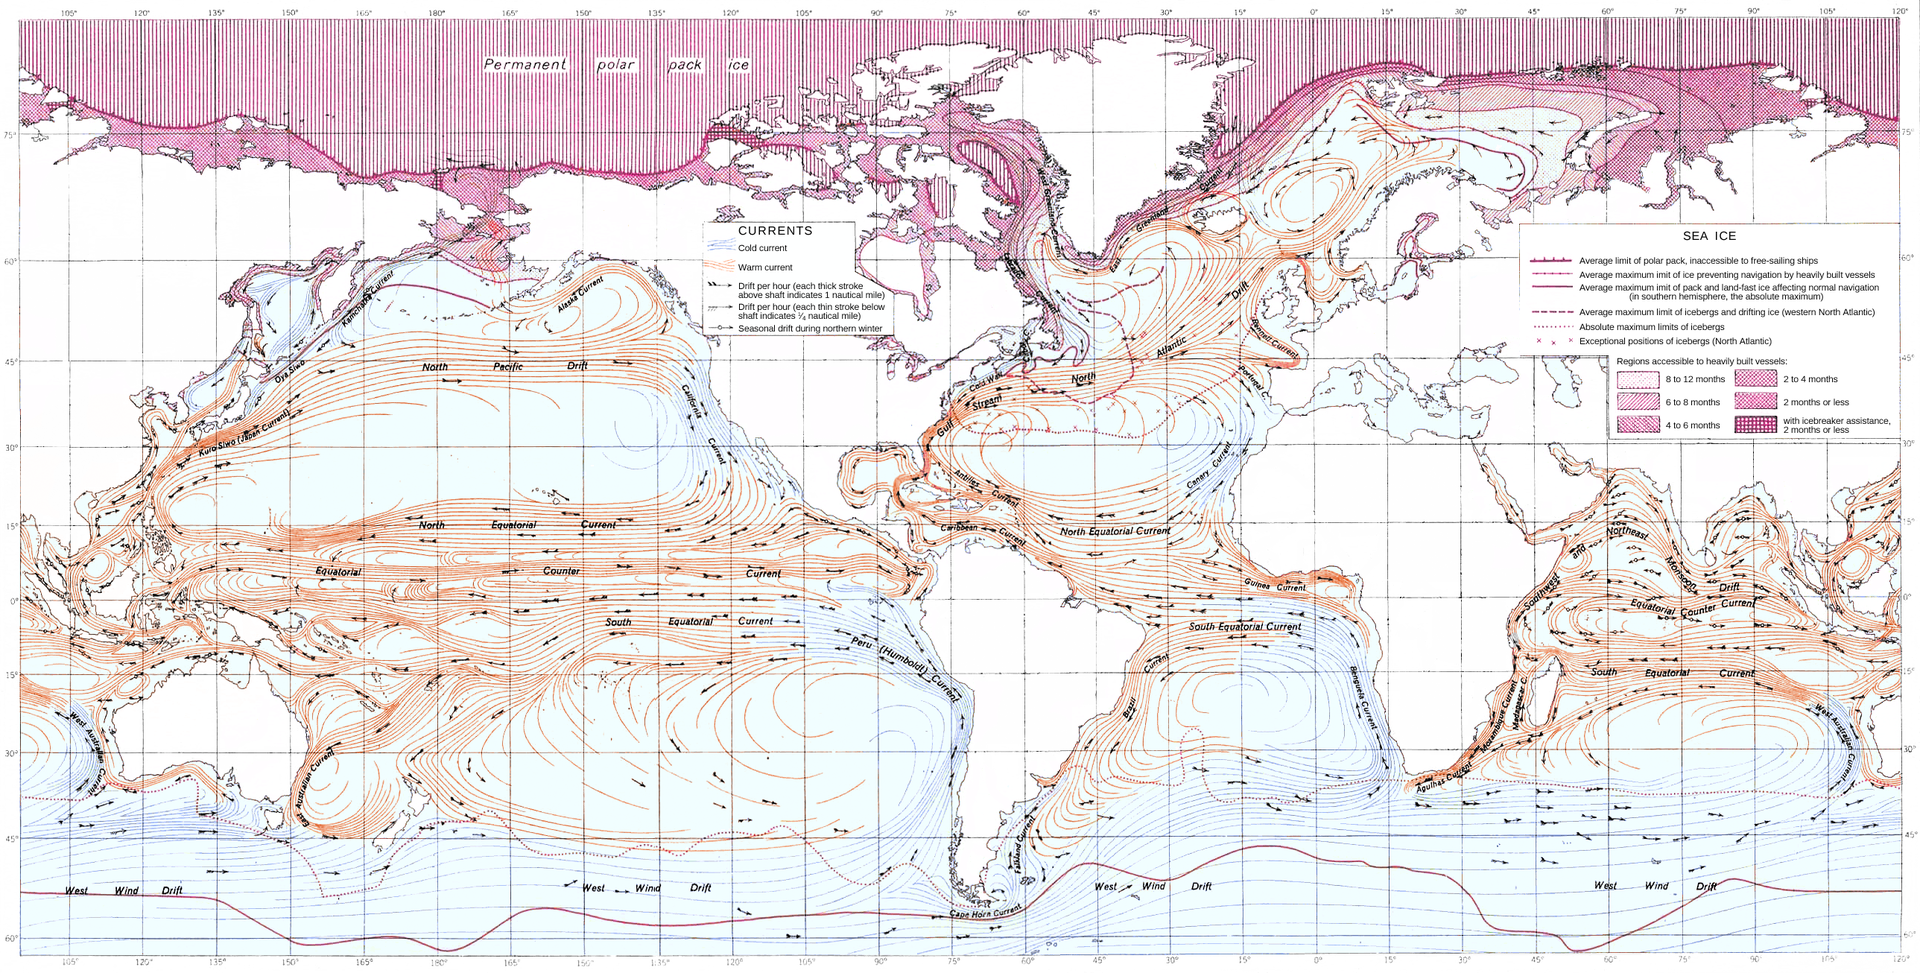 1920px-Ocean_currents_1943_for_colorblind_users.png